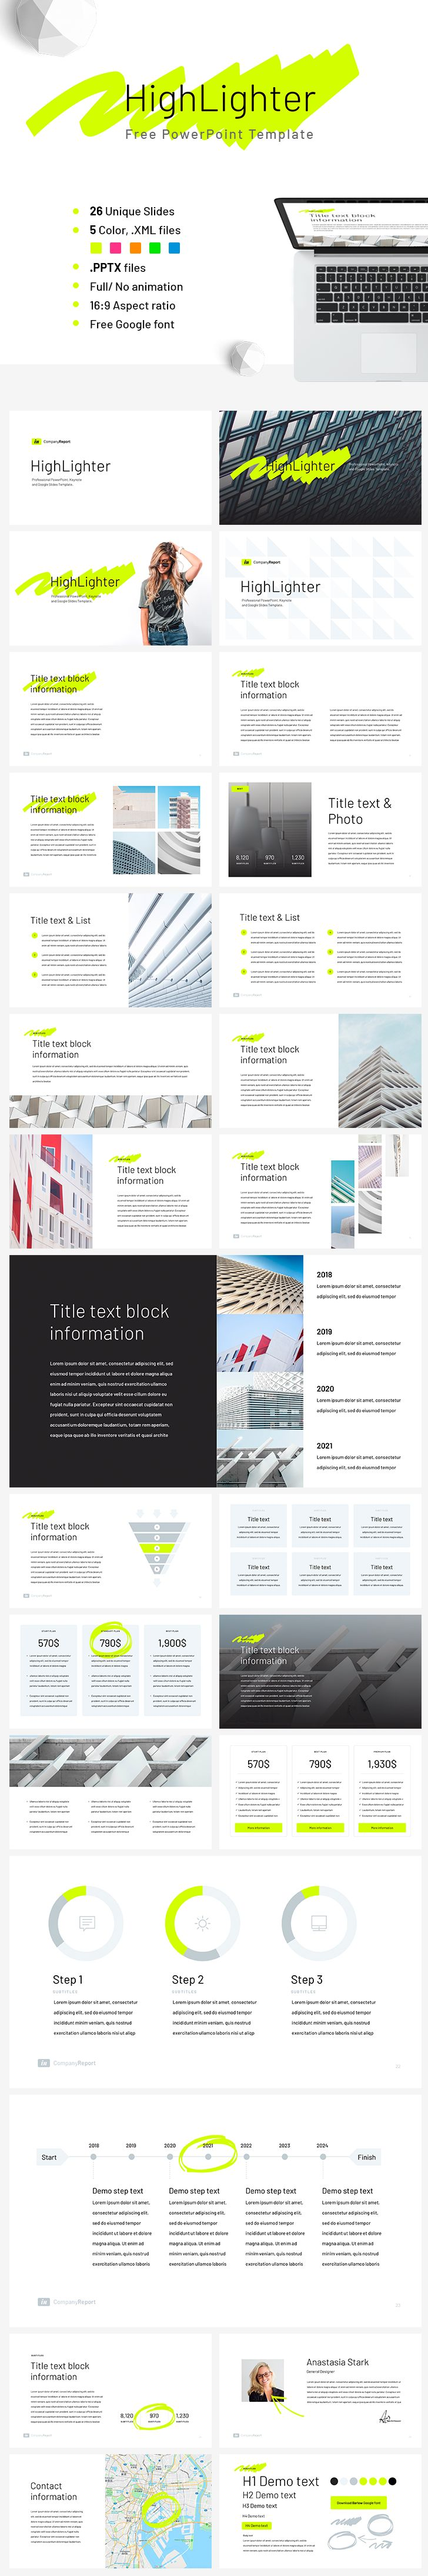 40 best free powerpoint template images on pinterest free stencils free powerpoint template company report highlighter 26 unique slides 5 pre made color toneelgroepblik Choice Image